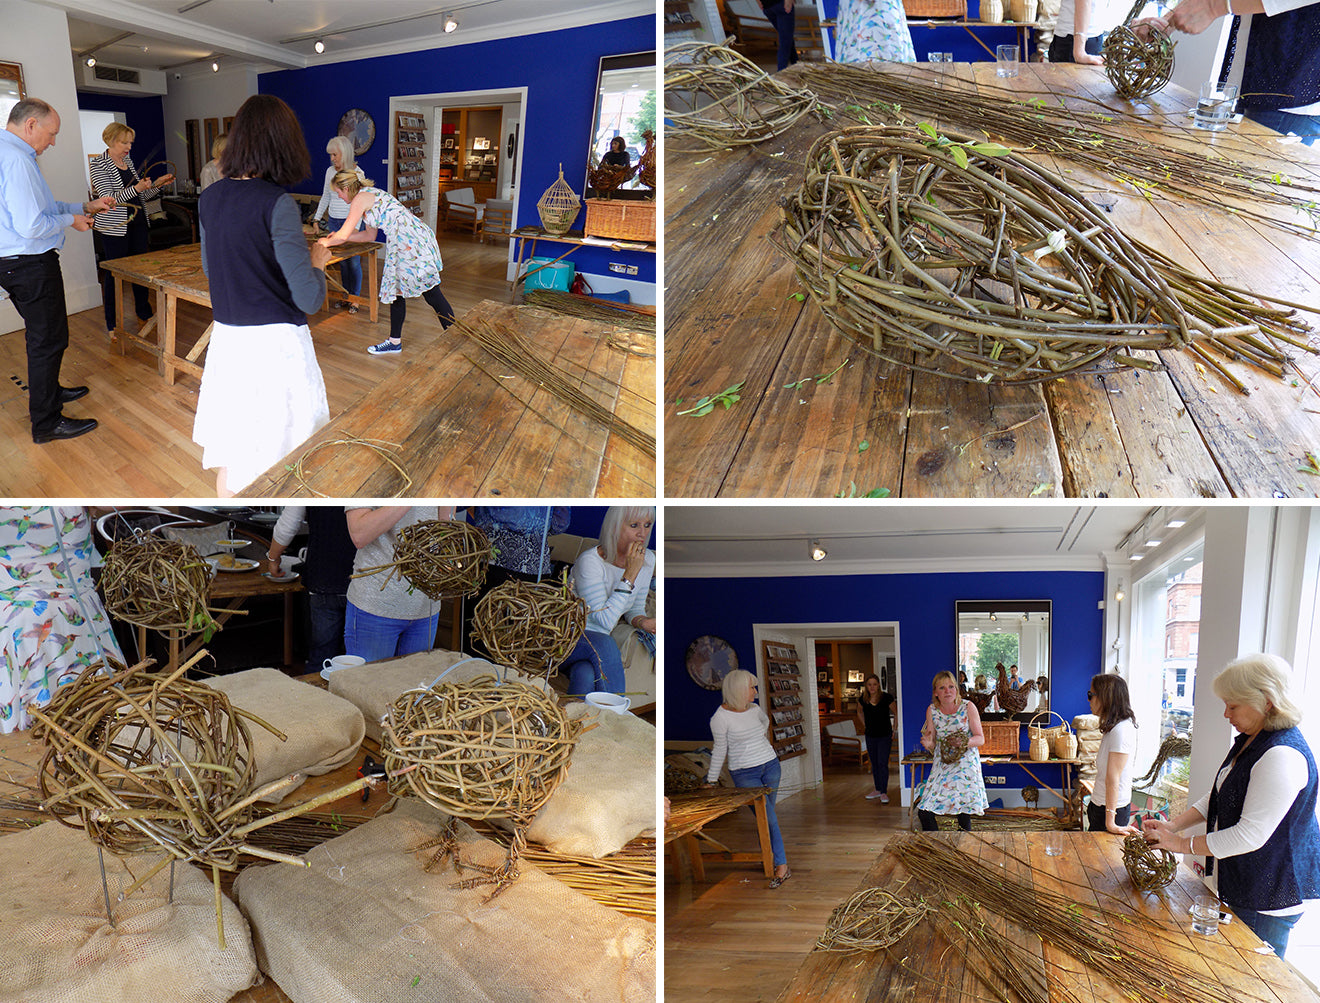 willow weaving sculptures at LINLEY London